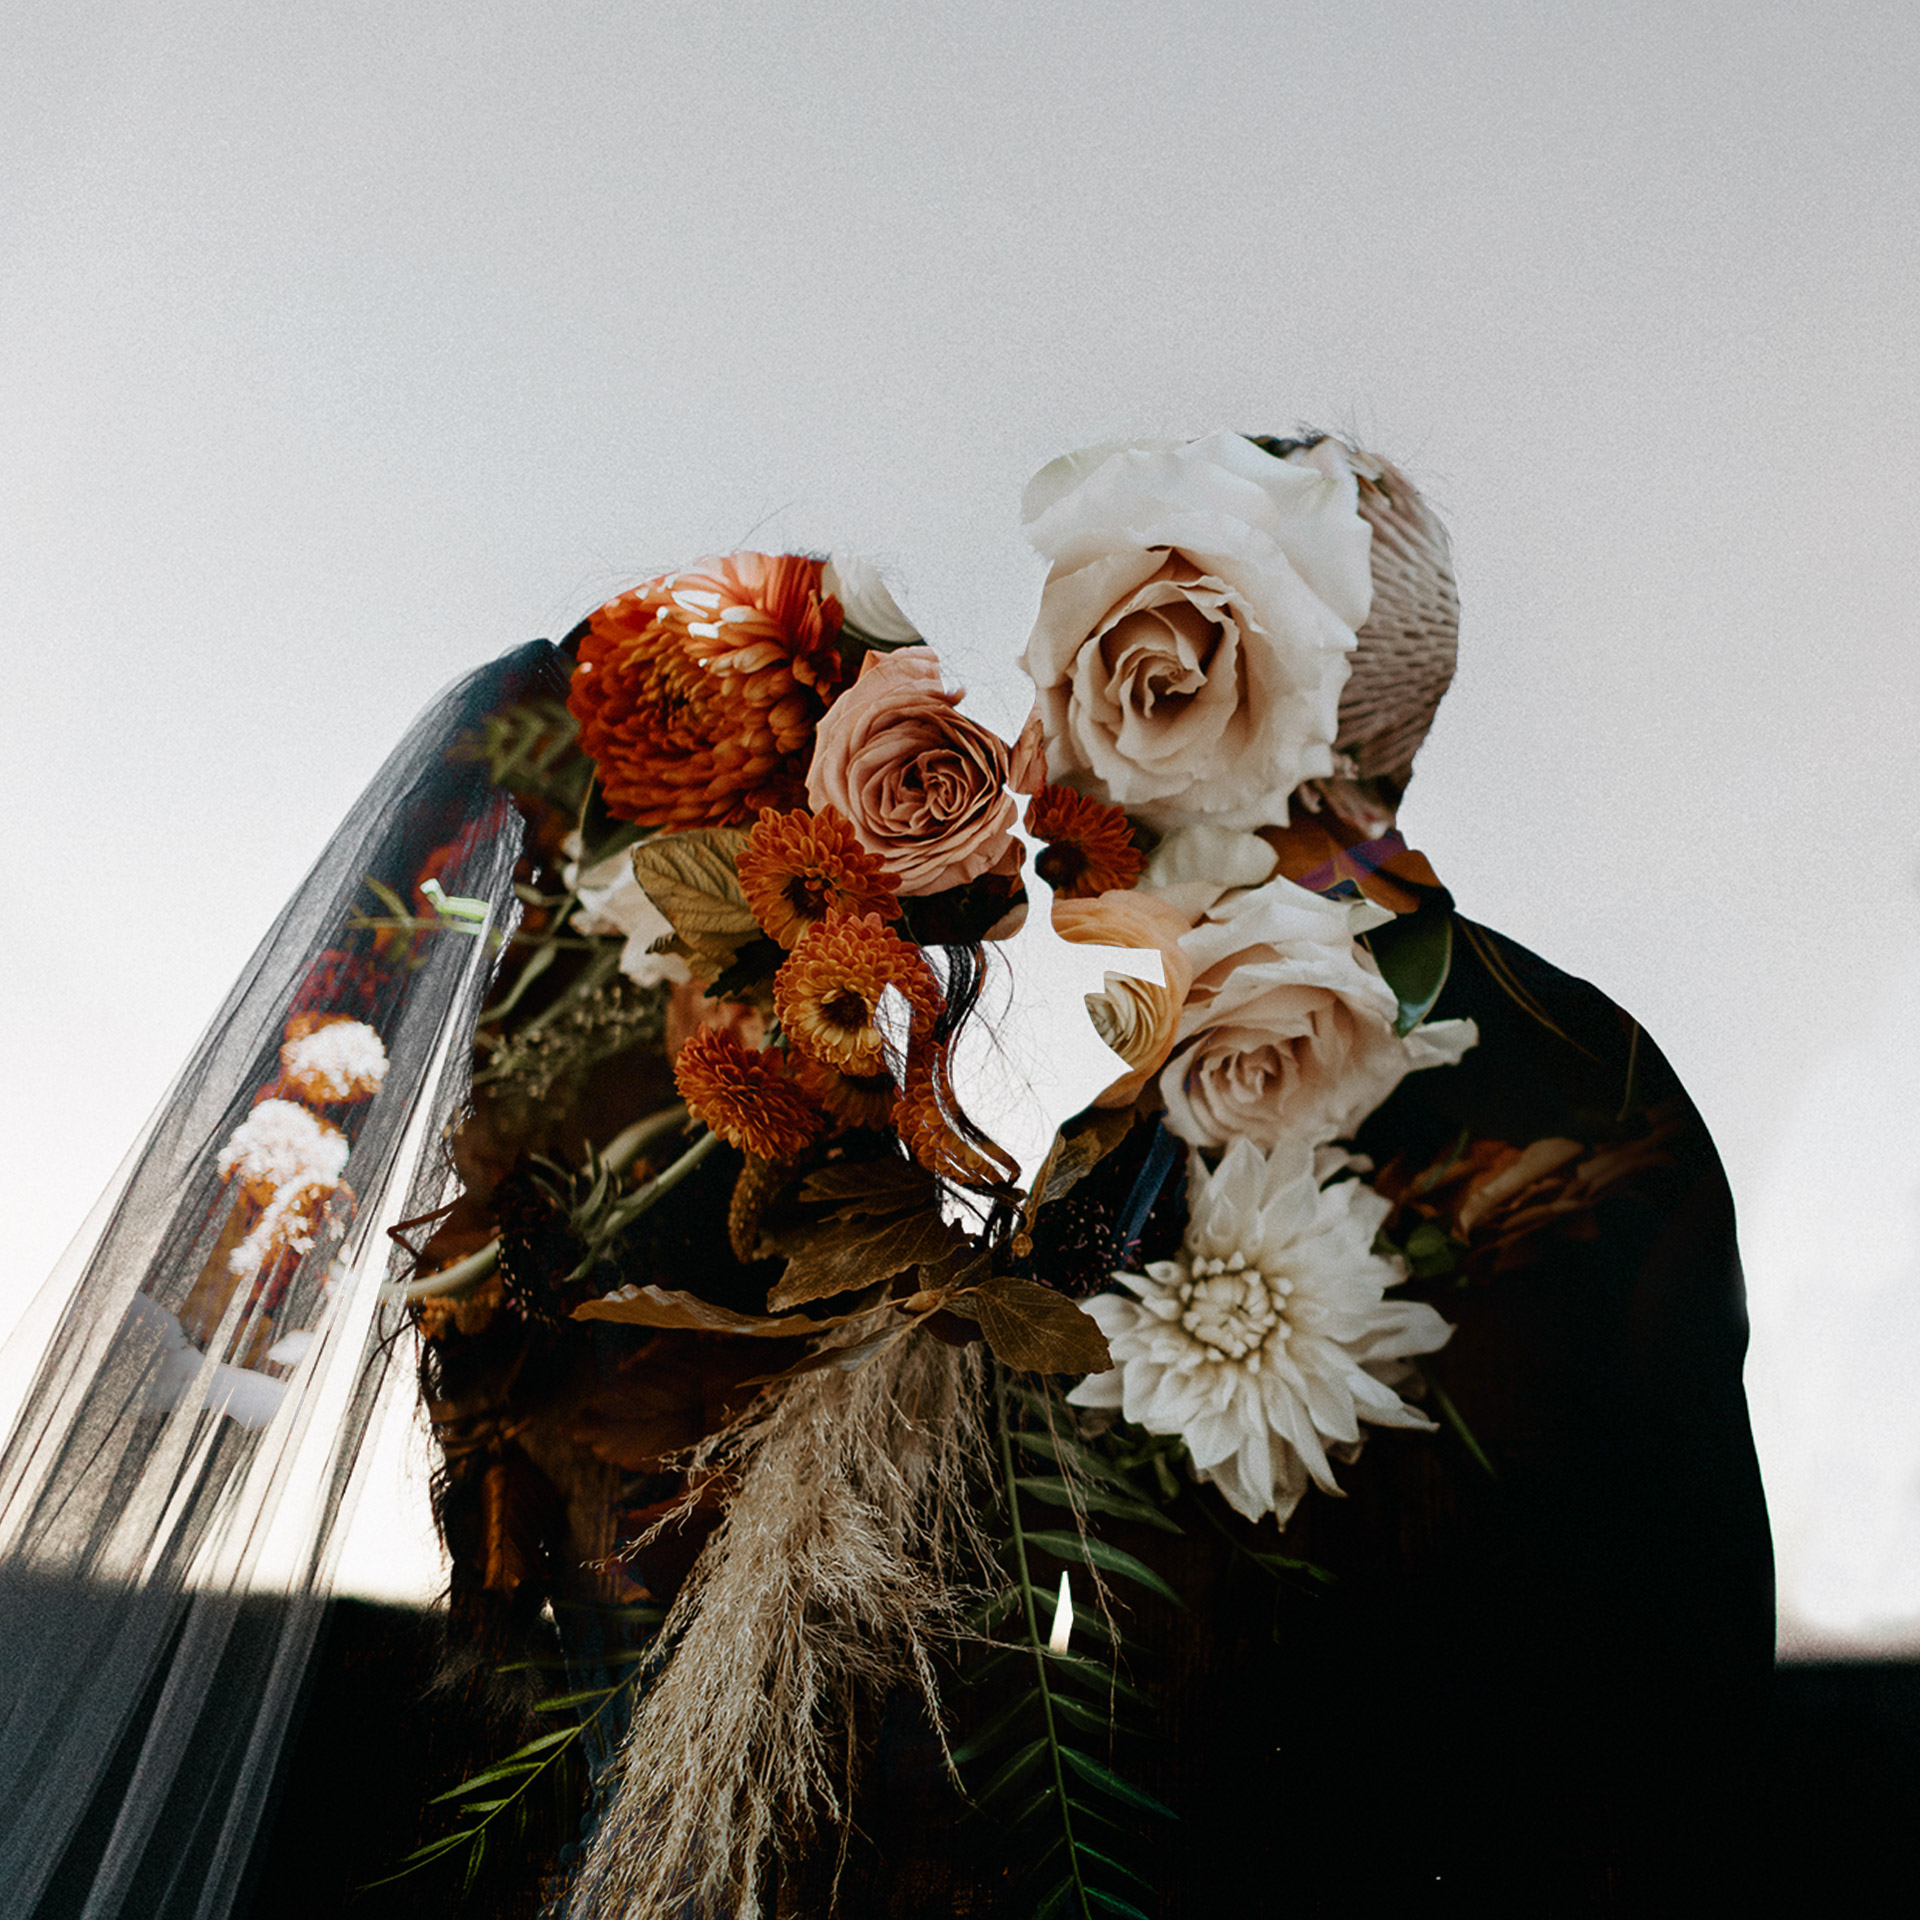 Double exposure on wedding day with wedding flowers and couples silhouette